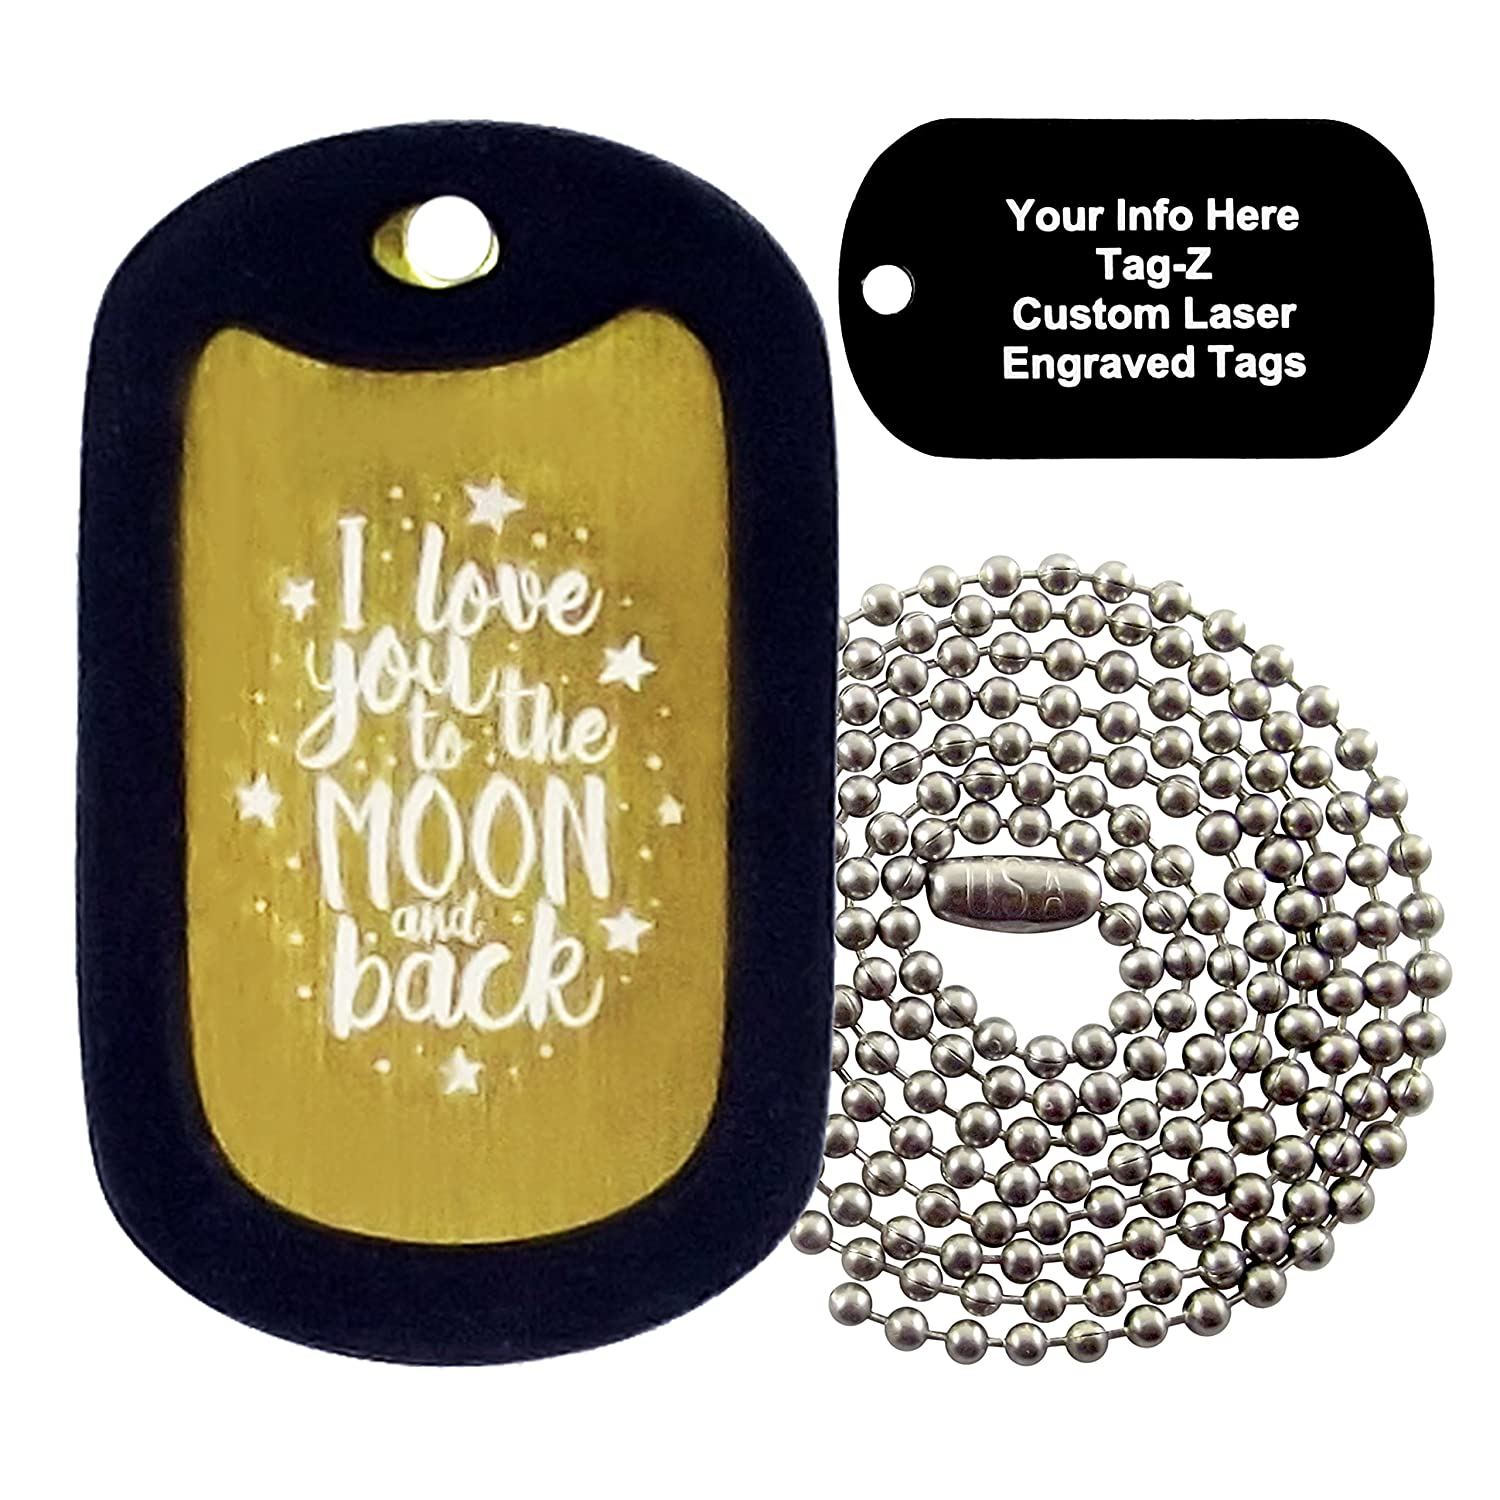 ca3aca7e52 Amazon.com : Military Dog Tags - CUSTOM ENGRAVED I Love You to the Moon and  Back - Gold - Military Dog Tag Necklace - Tag-Z : Pet Supplies